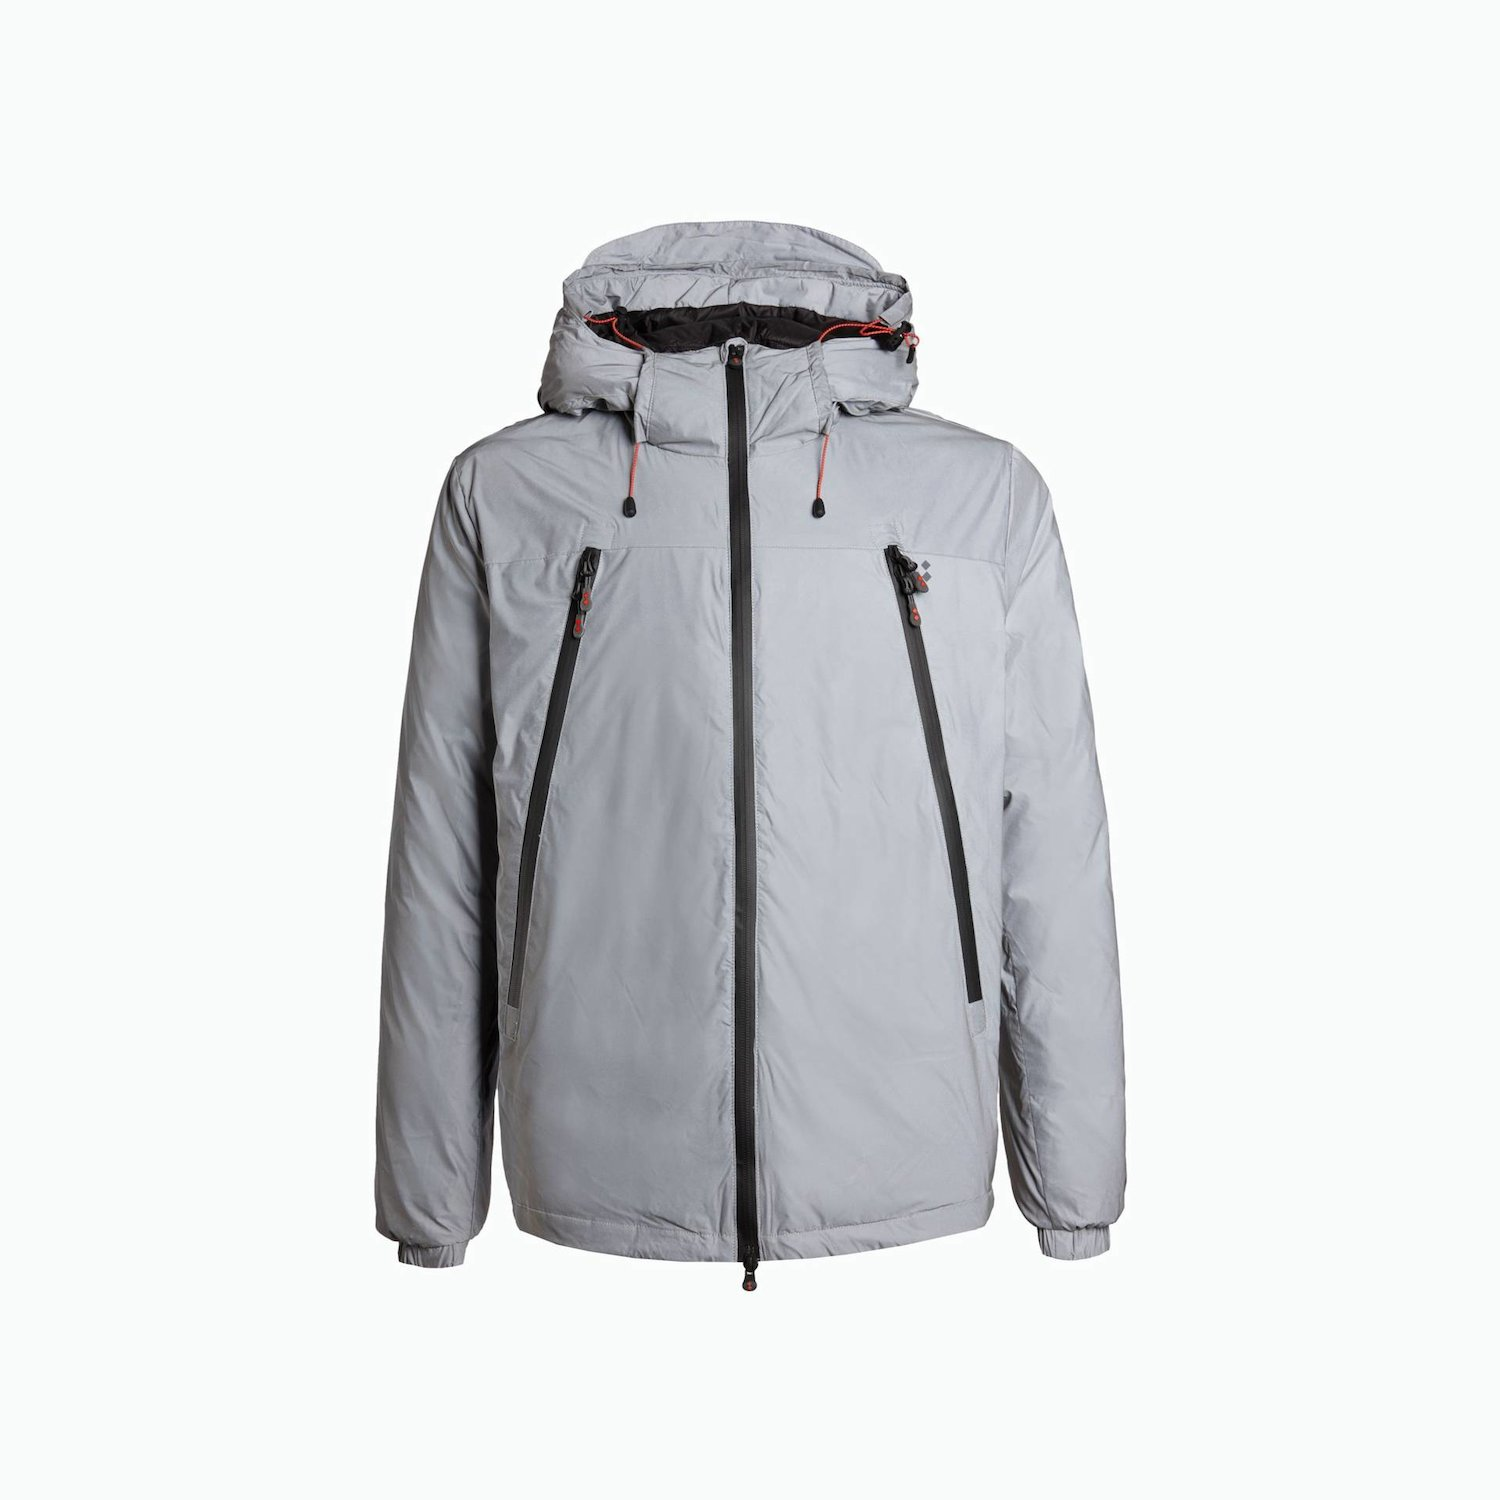 Chaqueta Lighterman - Plata Reflex